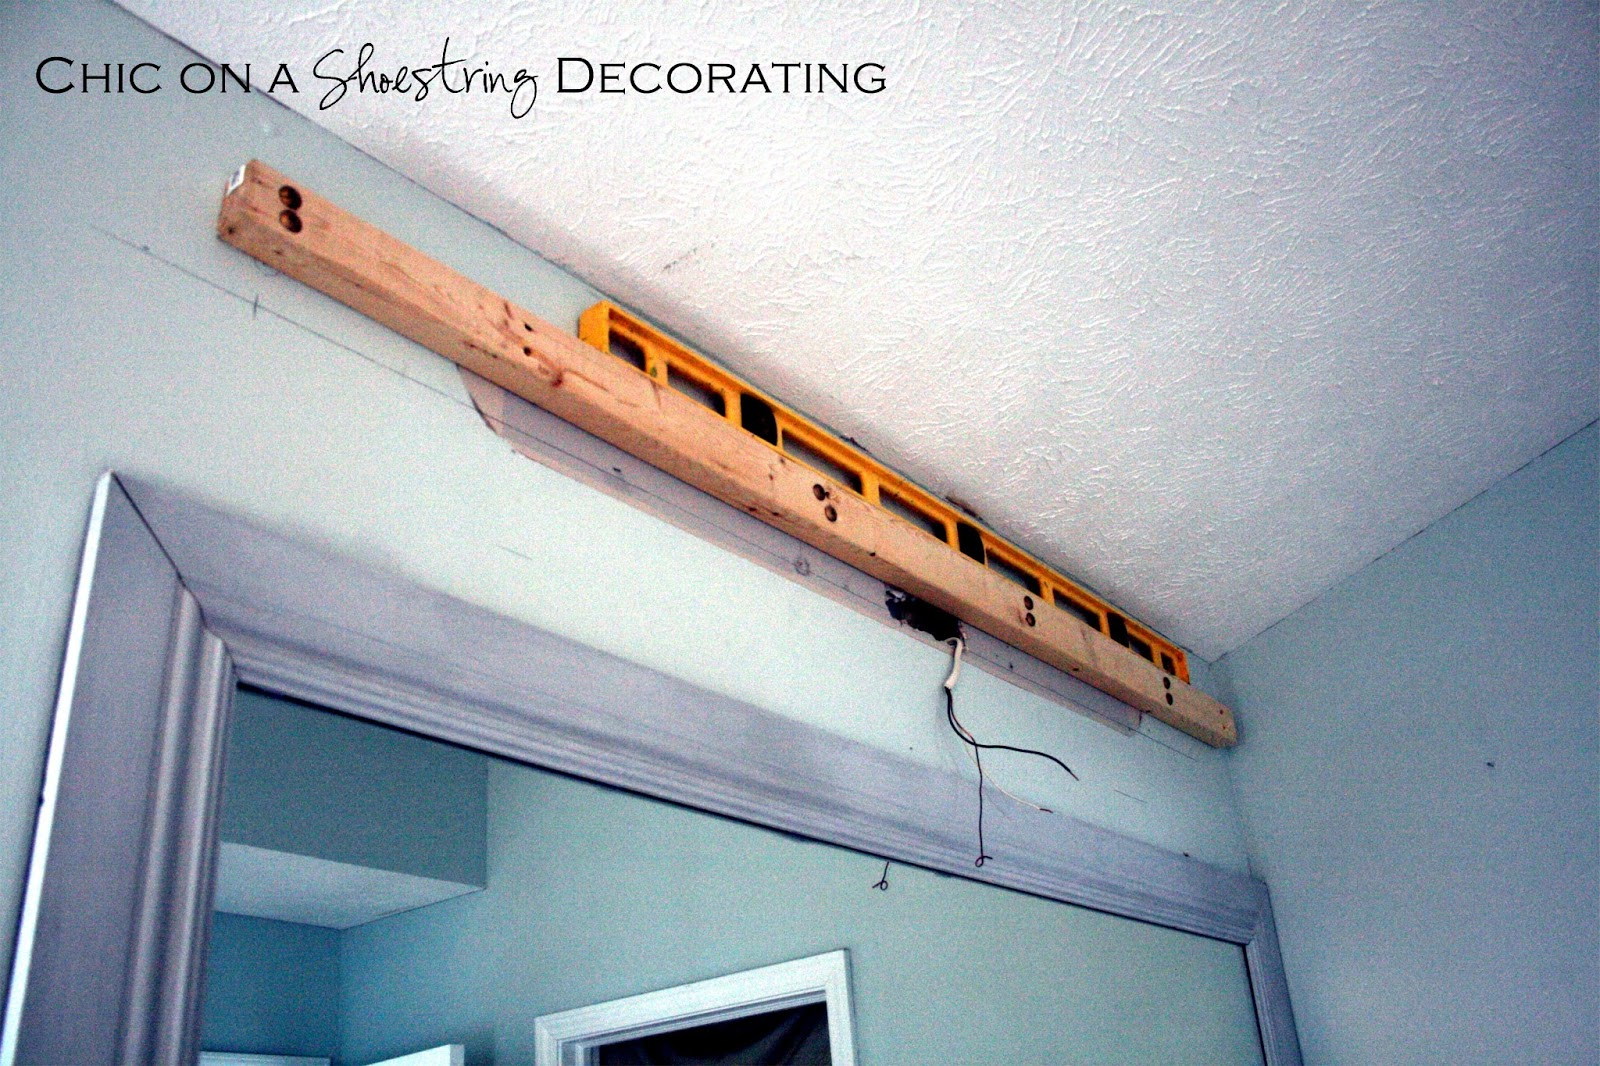 Bathroom Light Fixtures Diy chic on a shoestring decorating: how to build a bathroom light fixture